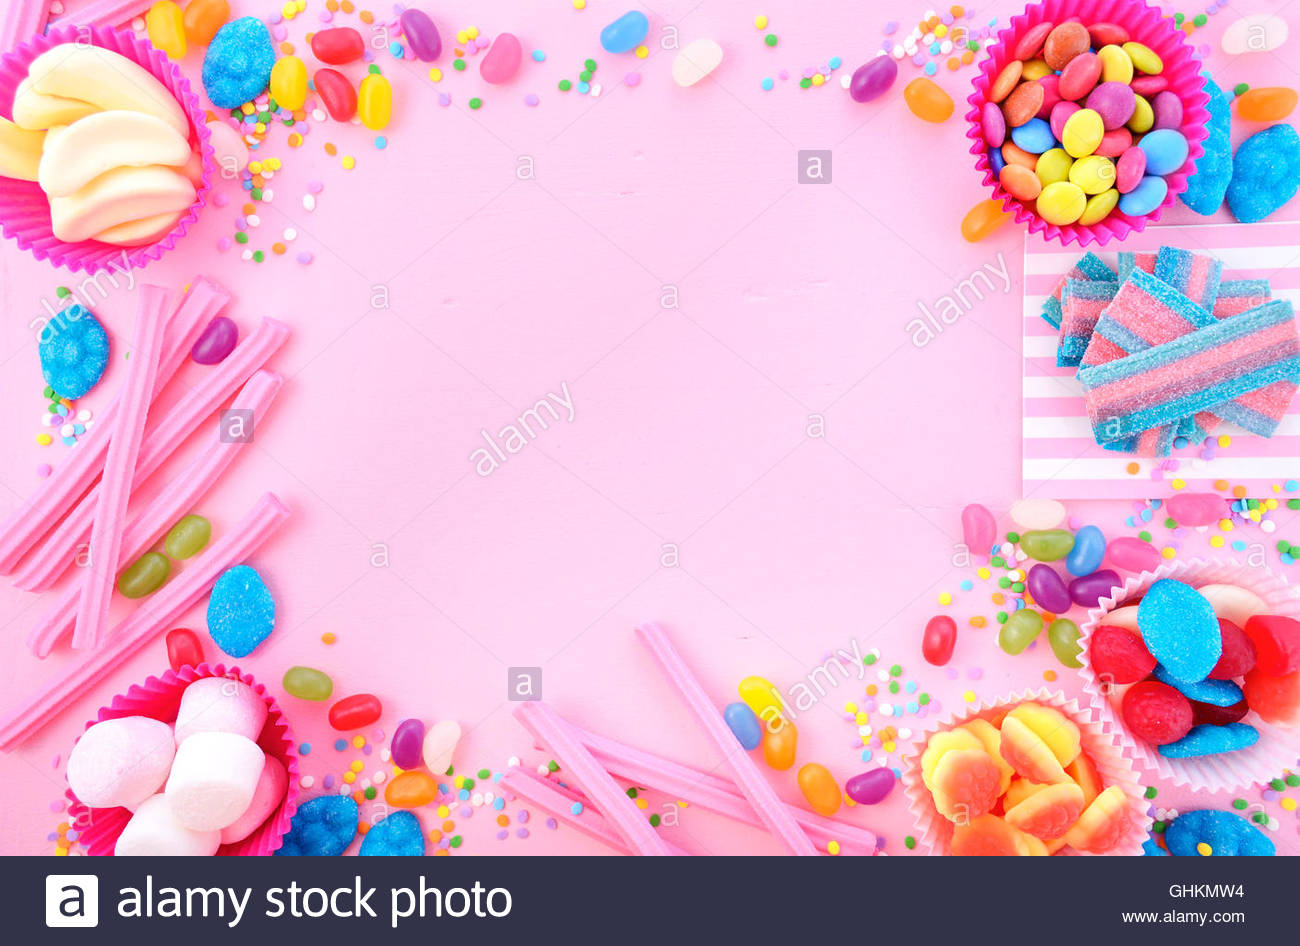 colorful birthday borders ; background-with-decorated-borders-of-bright-colorful-candy-on-pink-GHKMW4